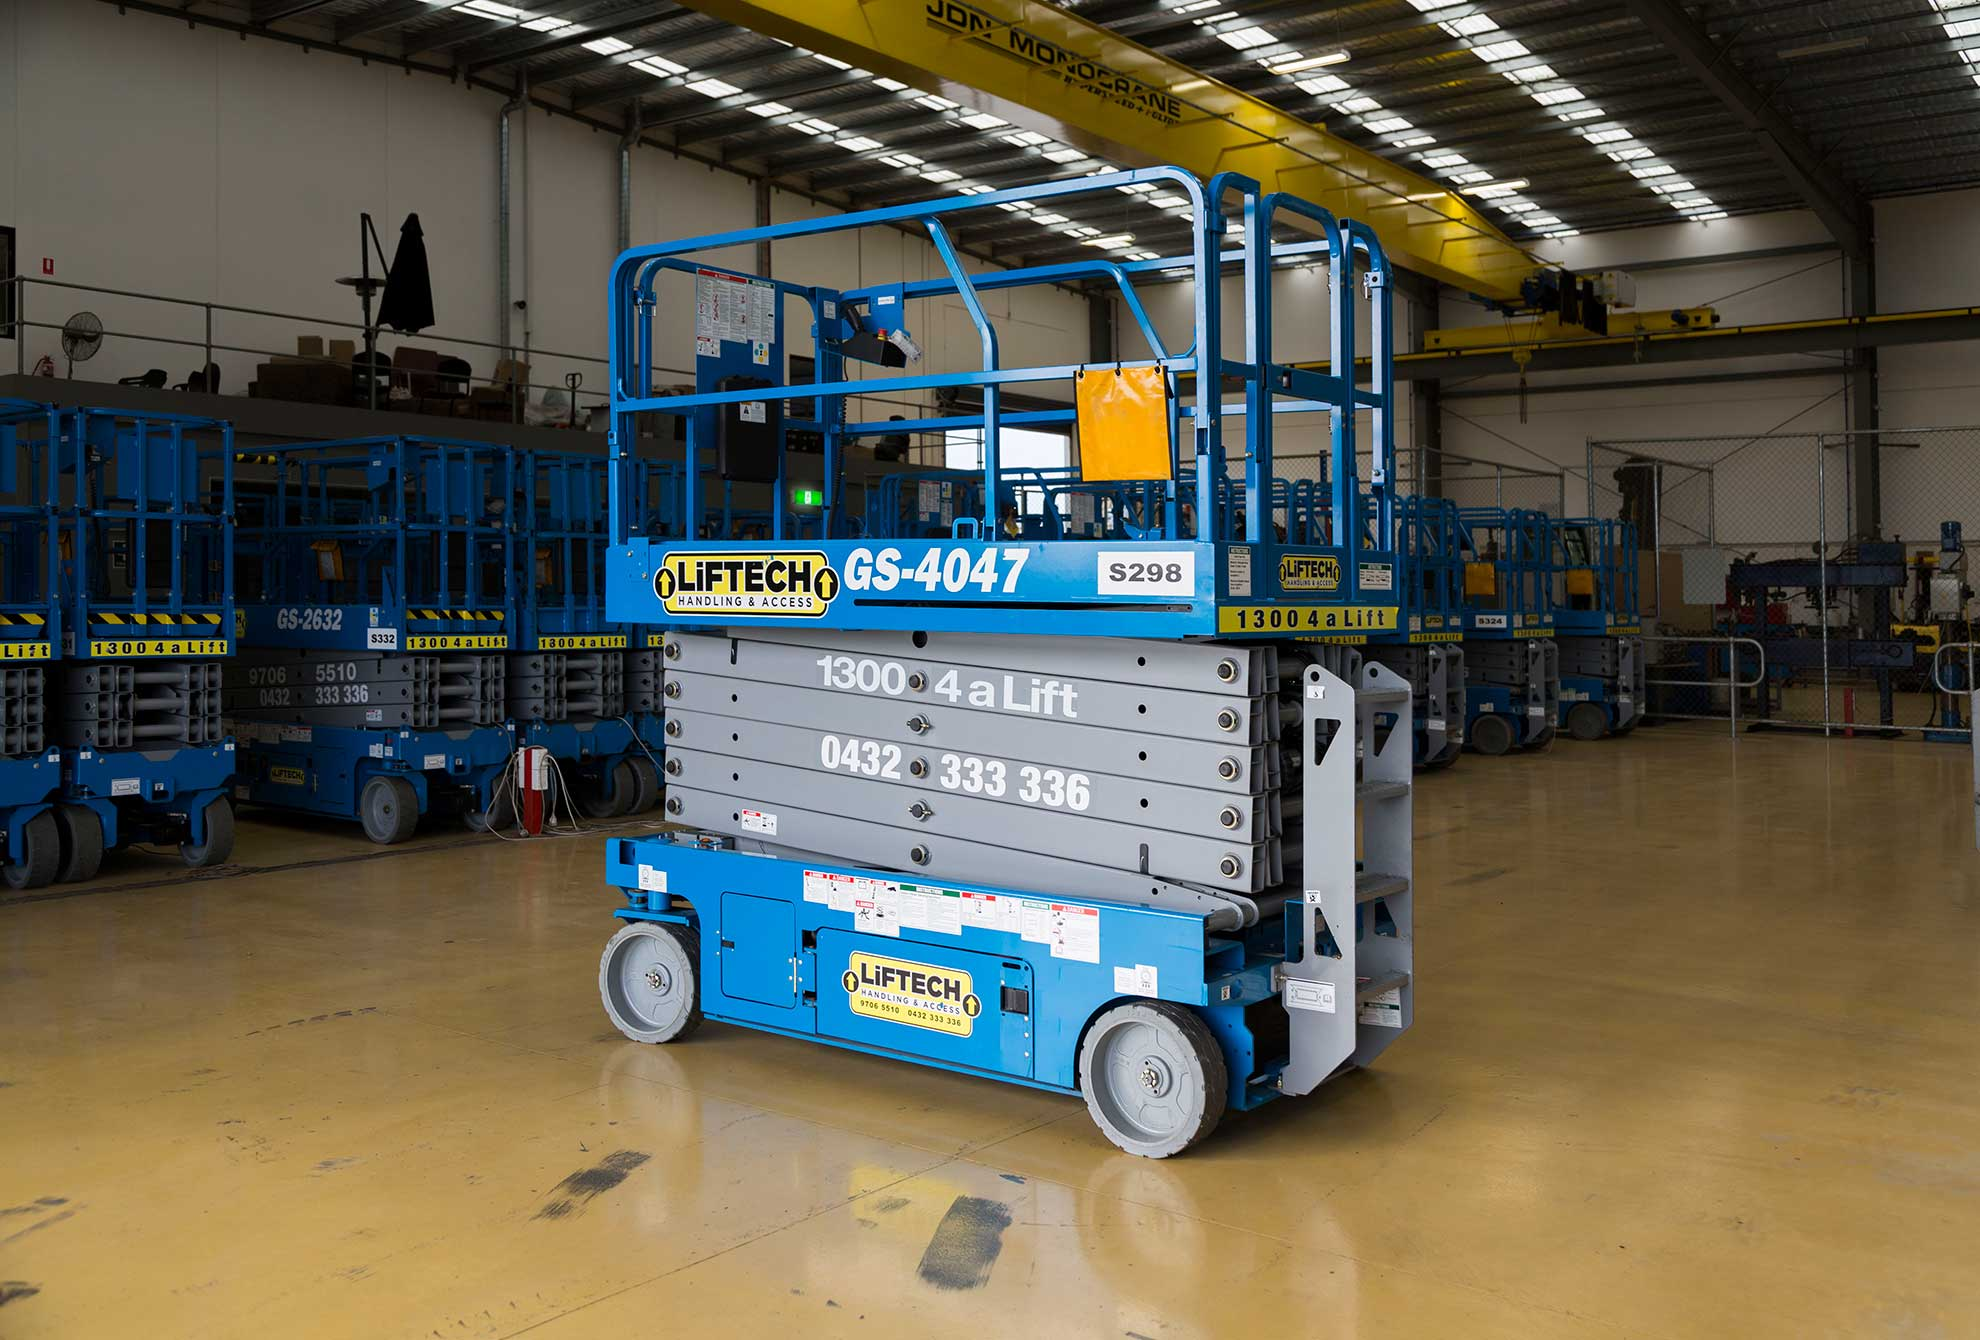 12m Standard Scissor Lift for Hire